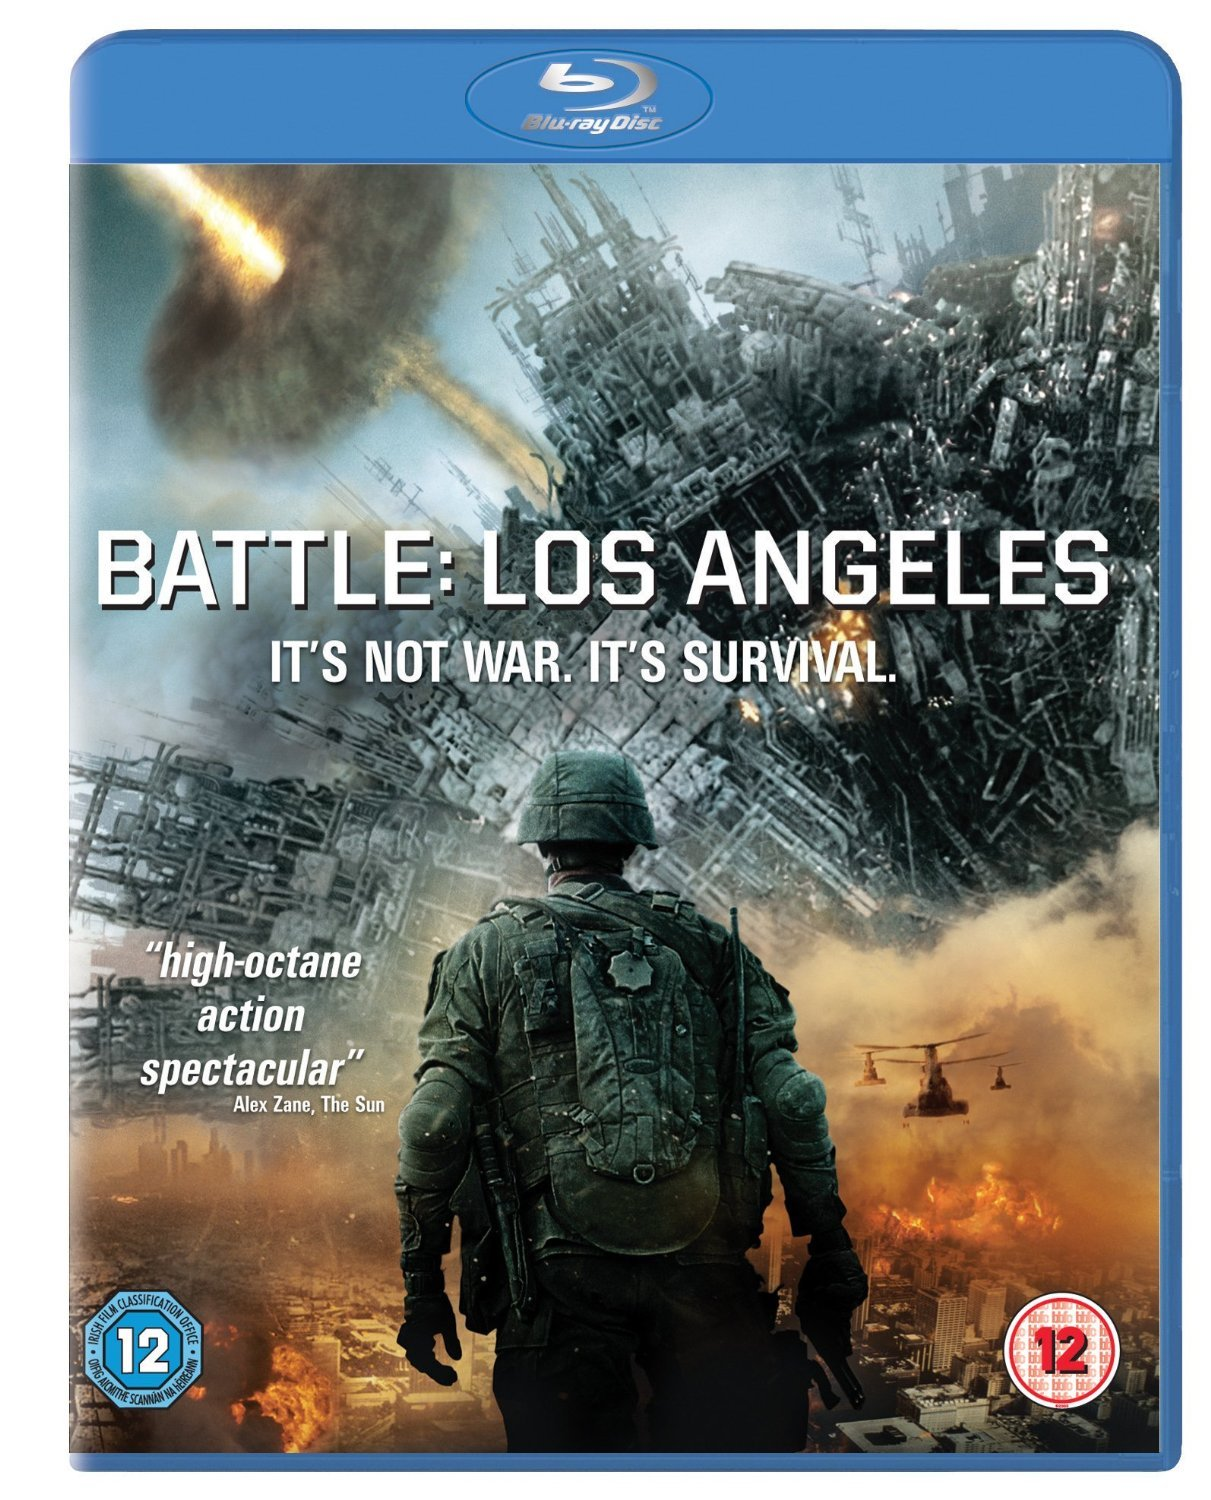 Battle: Los Angeles [Blu-ray] B00EOUZWJQ